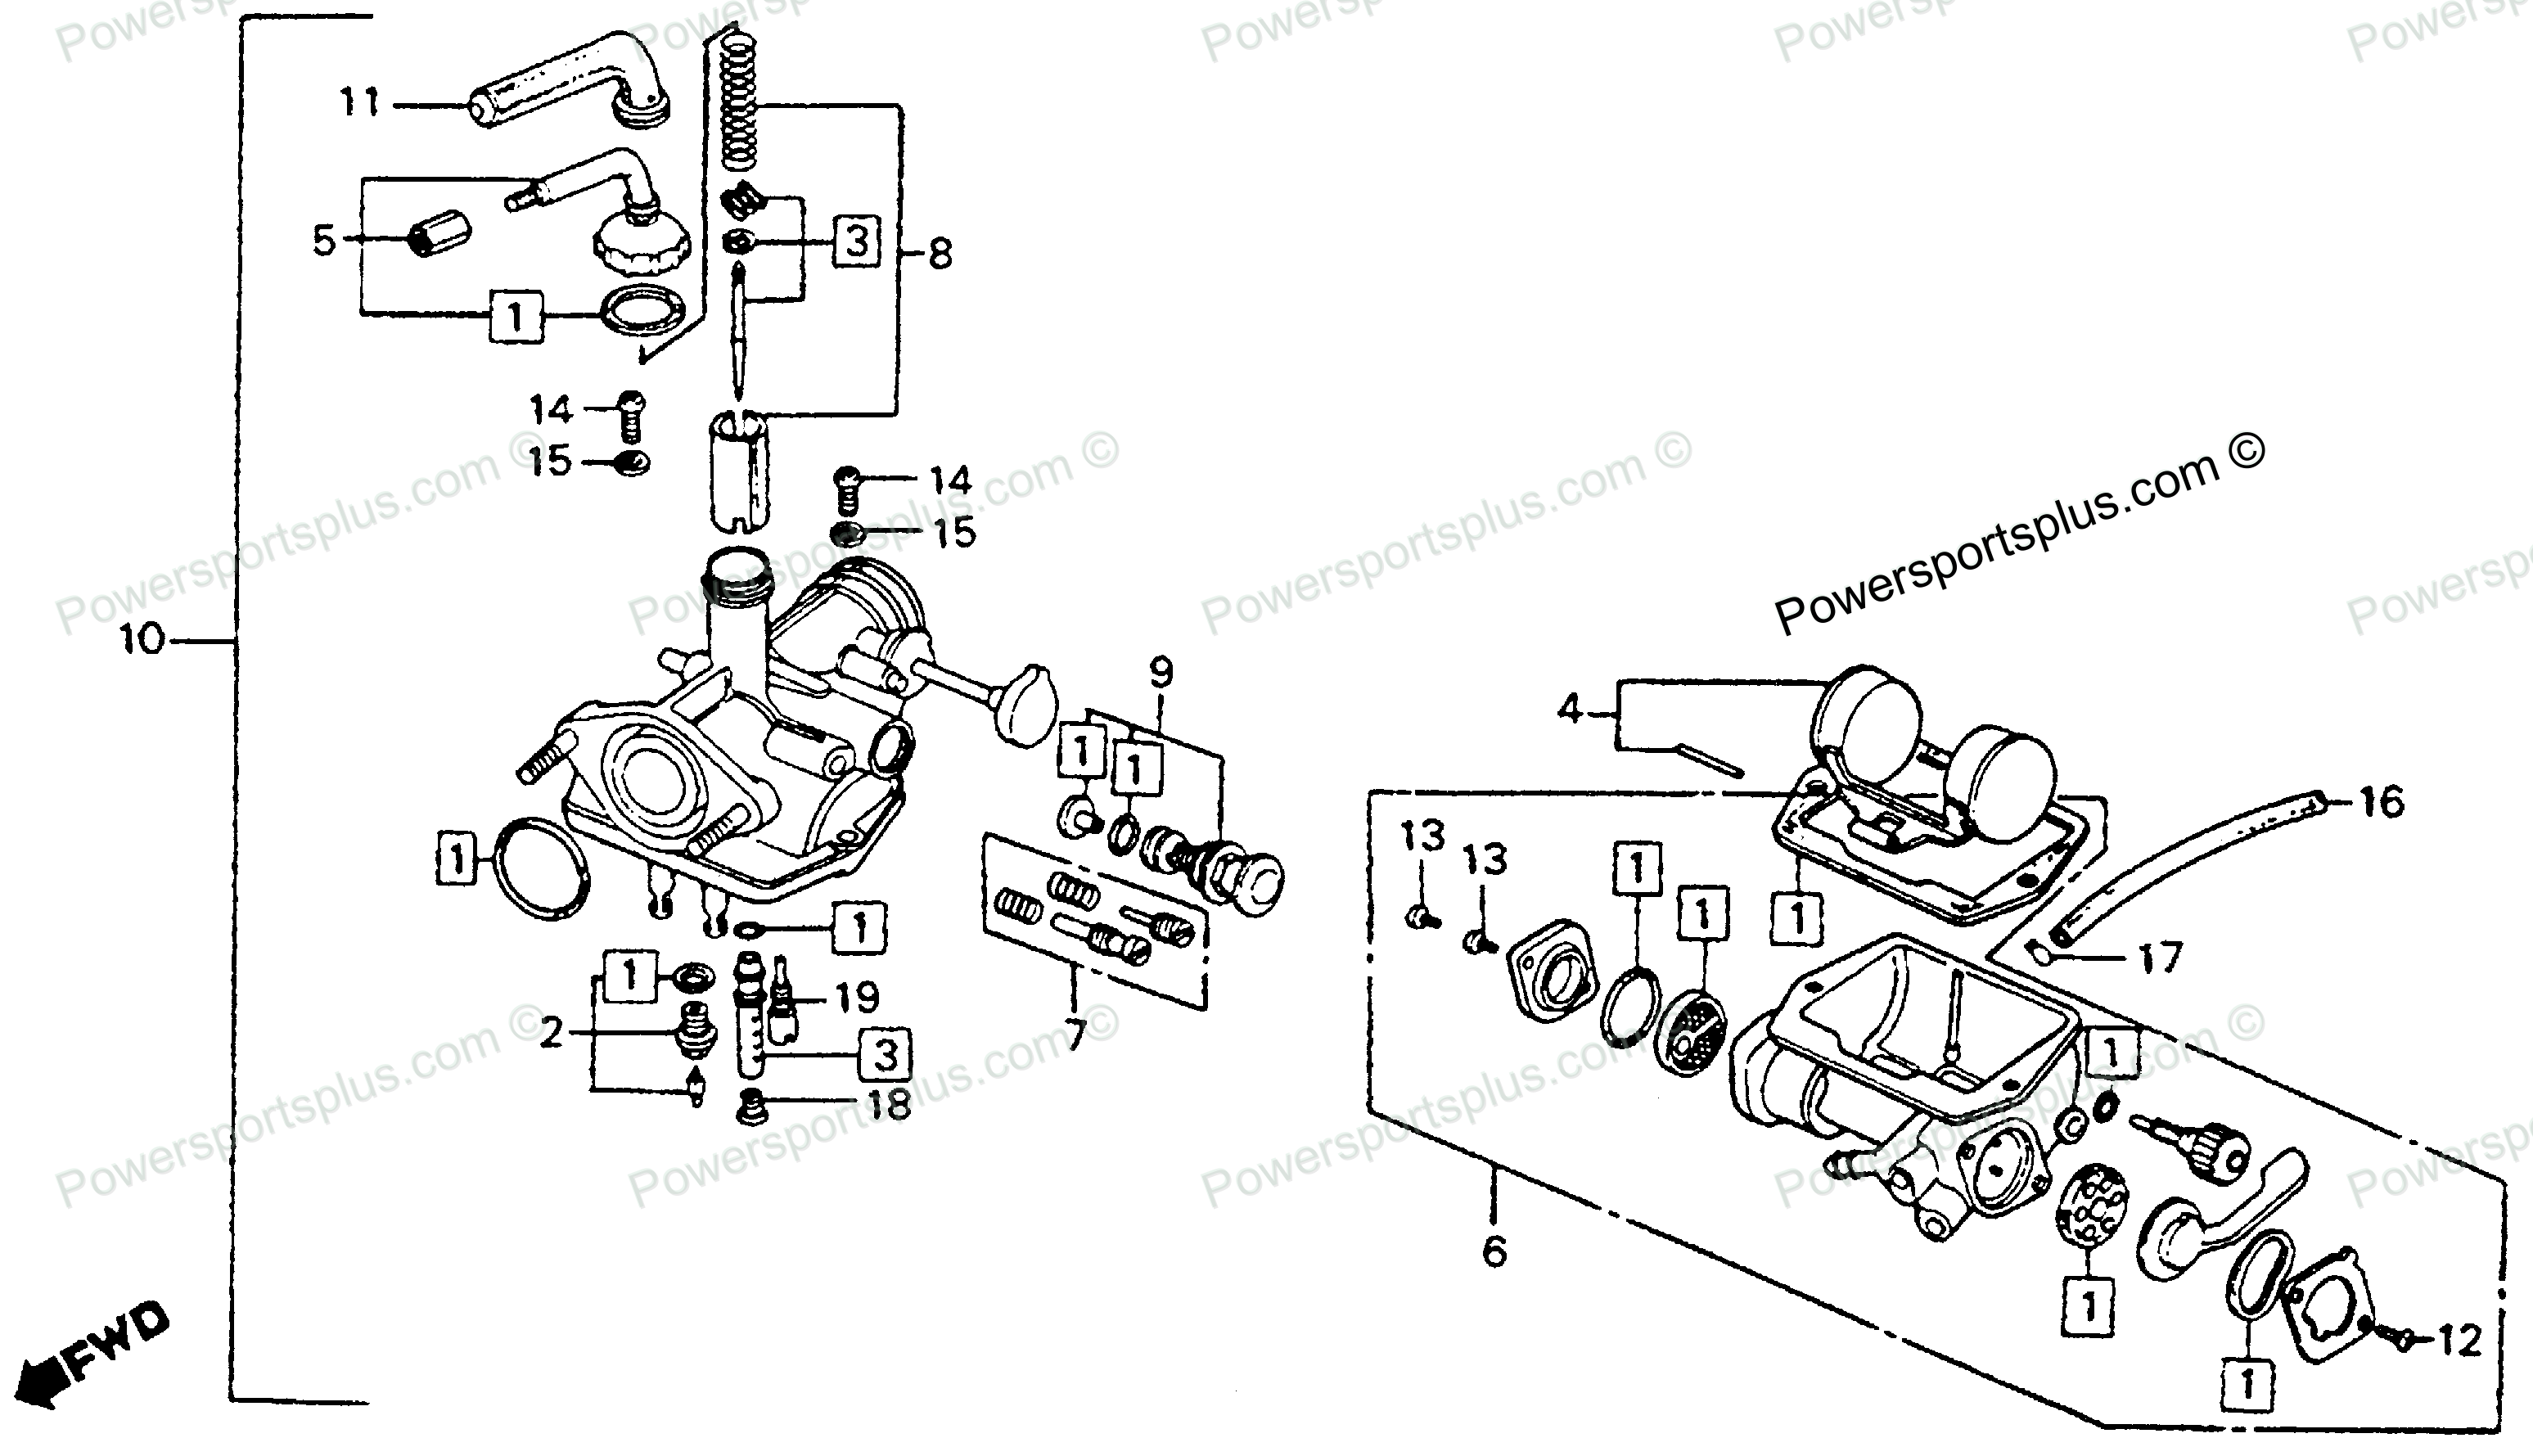 0efb18283ae24d7a2627632be070cf5c diagram of honda motorcycle parts 1976 ct90 a carburetor k6 77 honda trail 90 wiring diagram at readyjetset.co